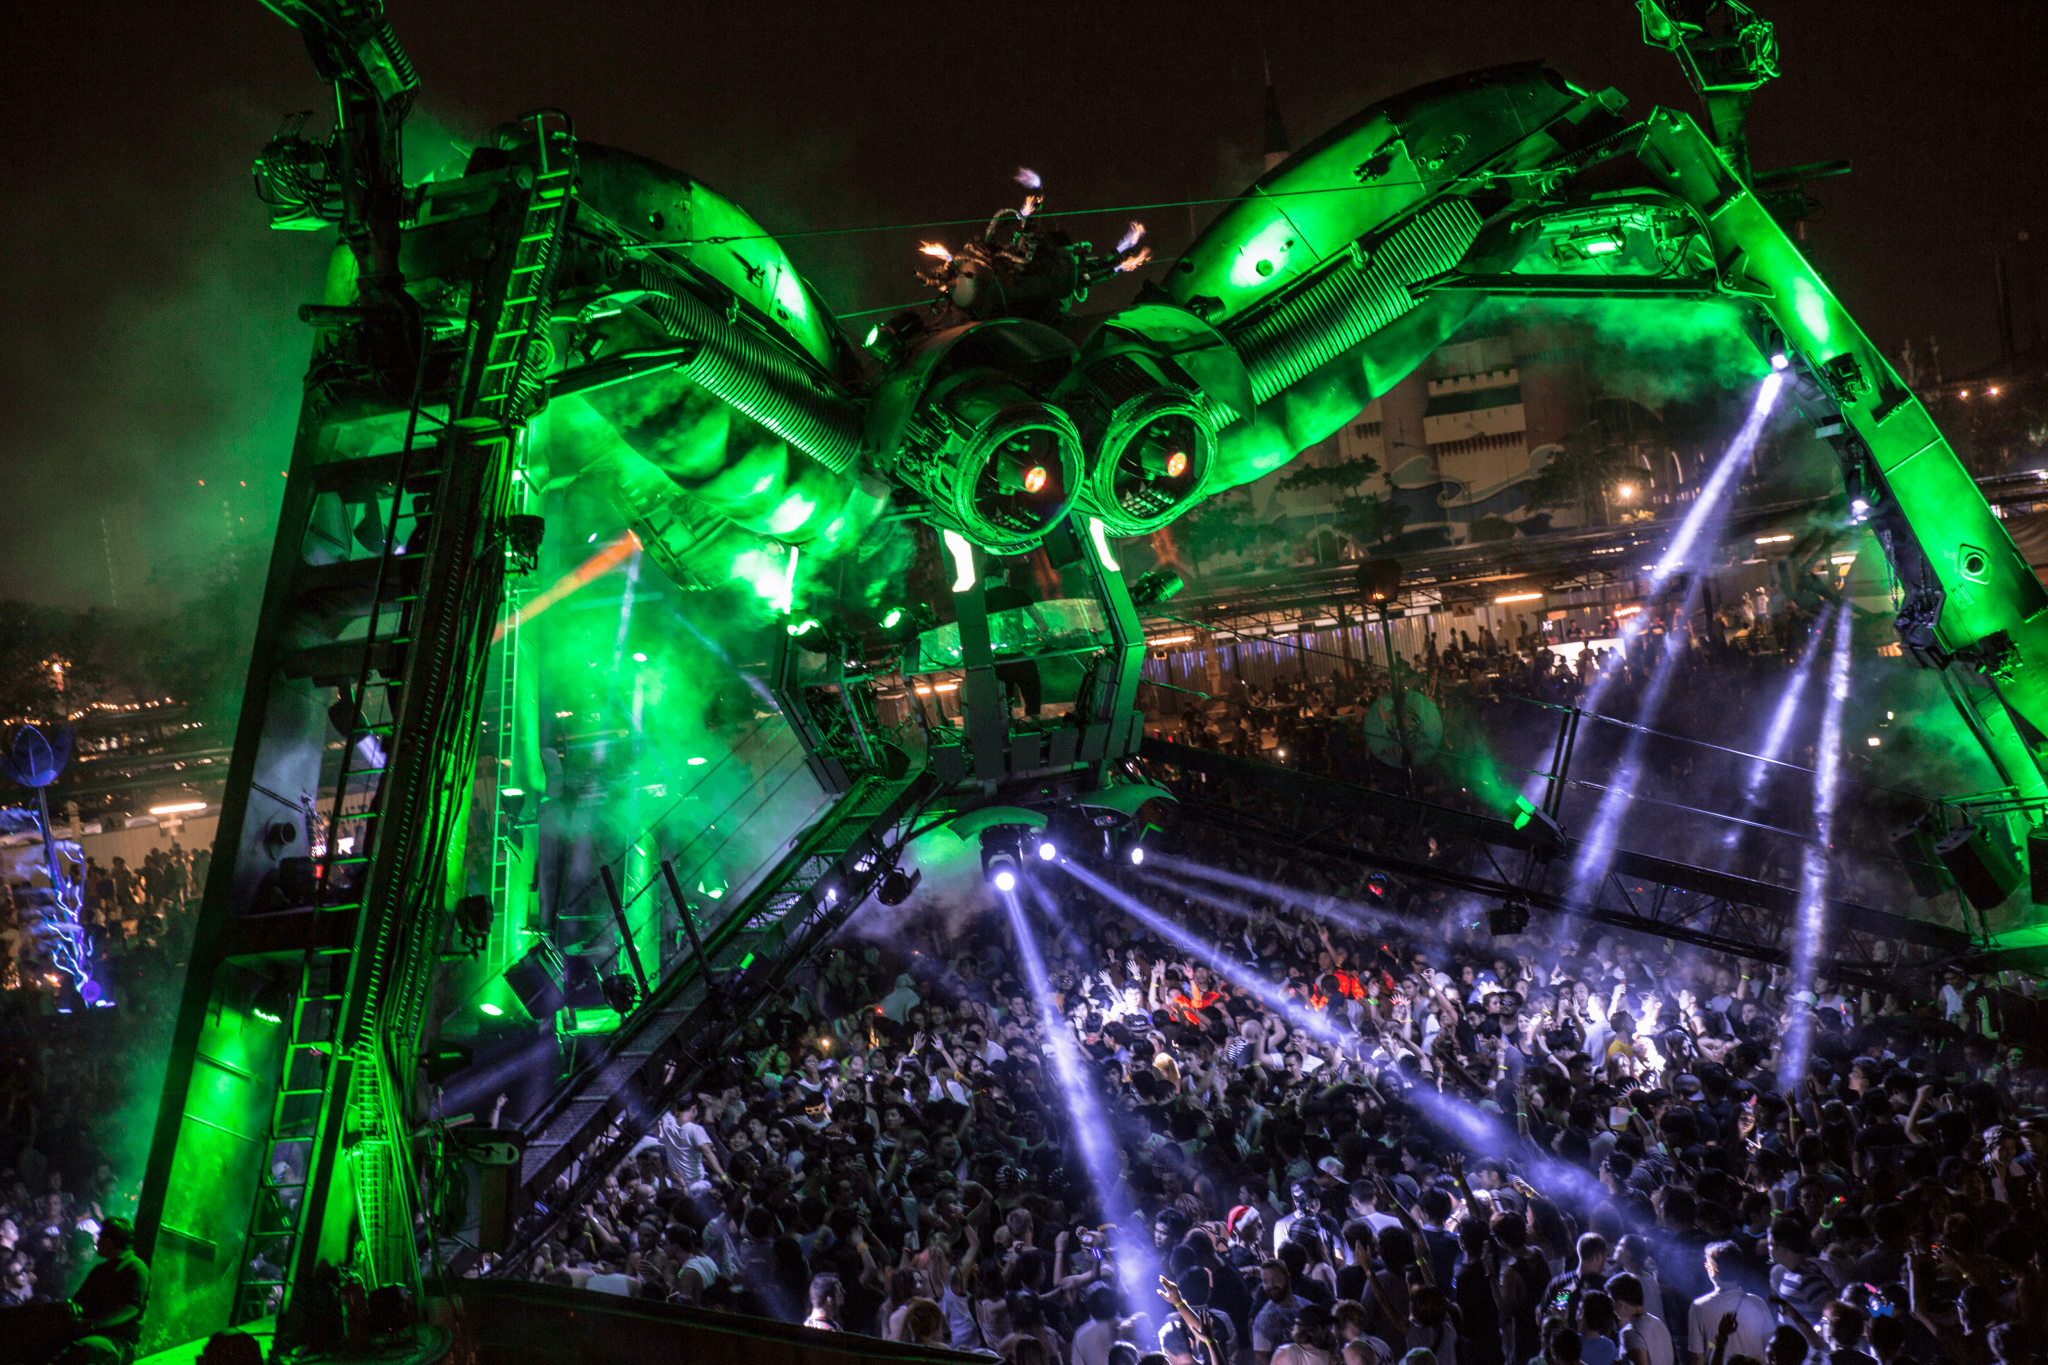 Arcadia hits Gravity festival in Thailand in January 2016 – Loaded